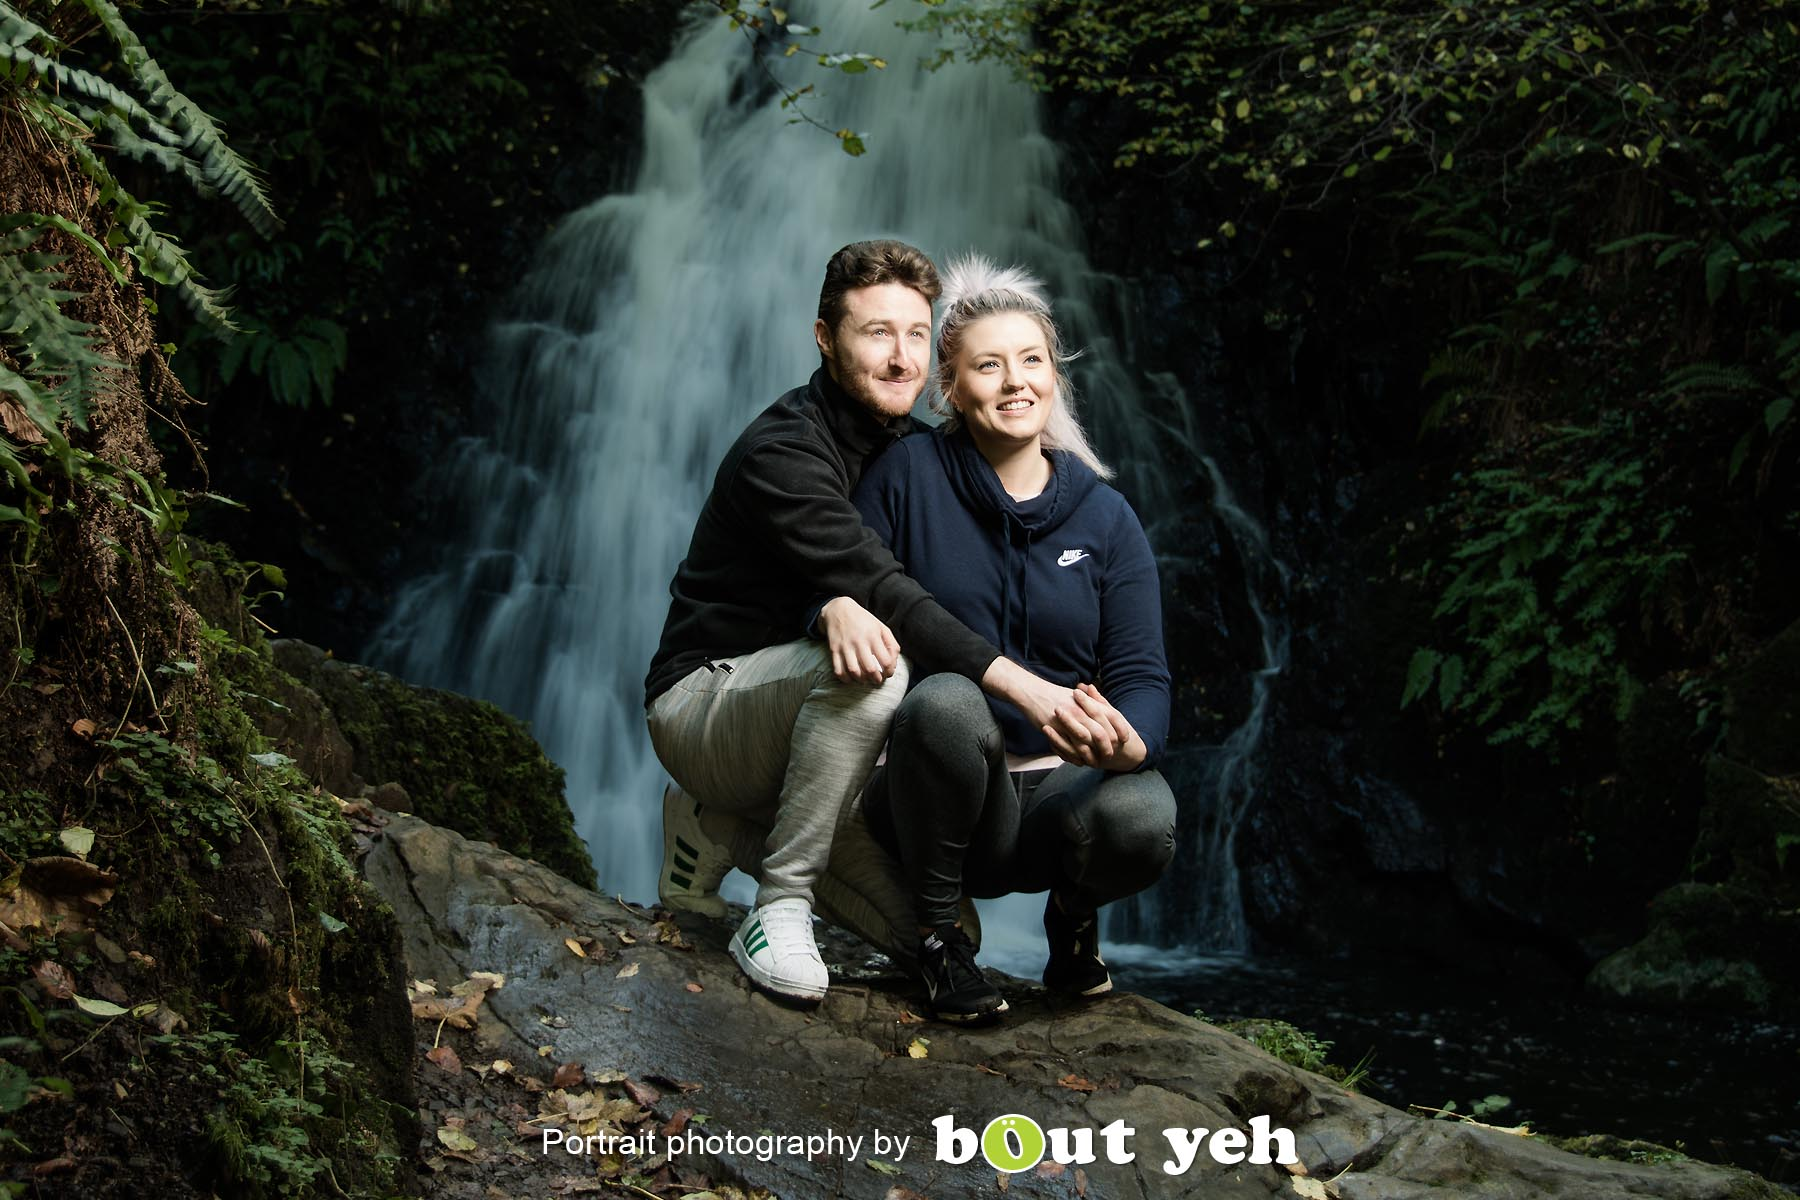 David and Joanna, at Gleno Waterfall, Northern Ireland - photo 9011.